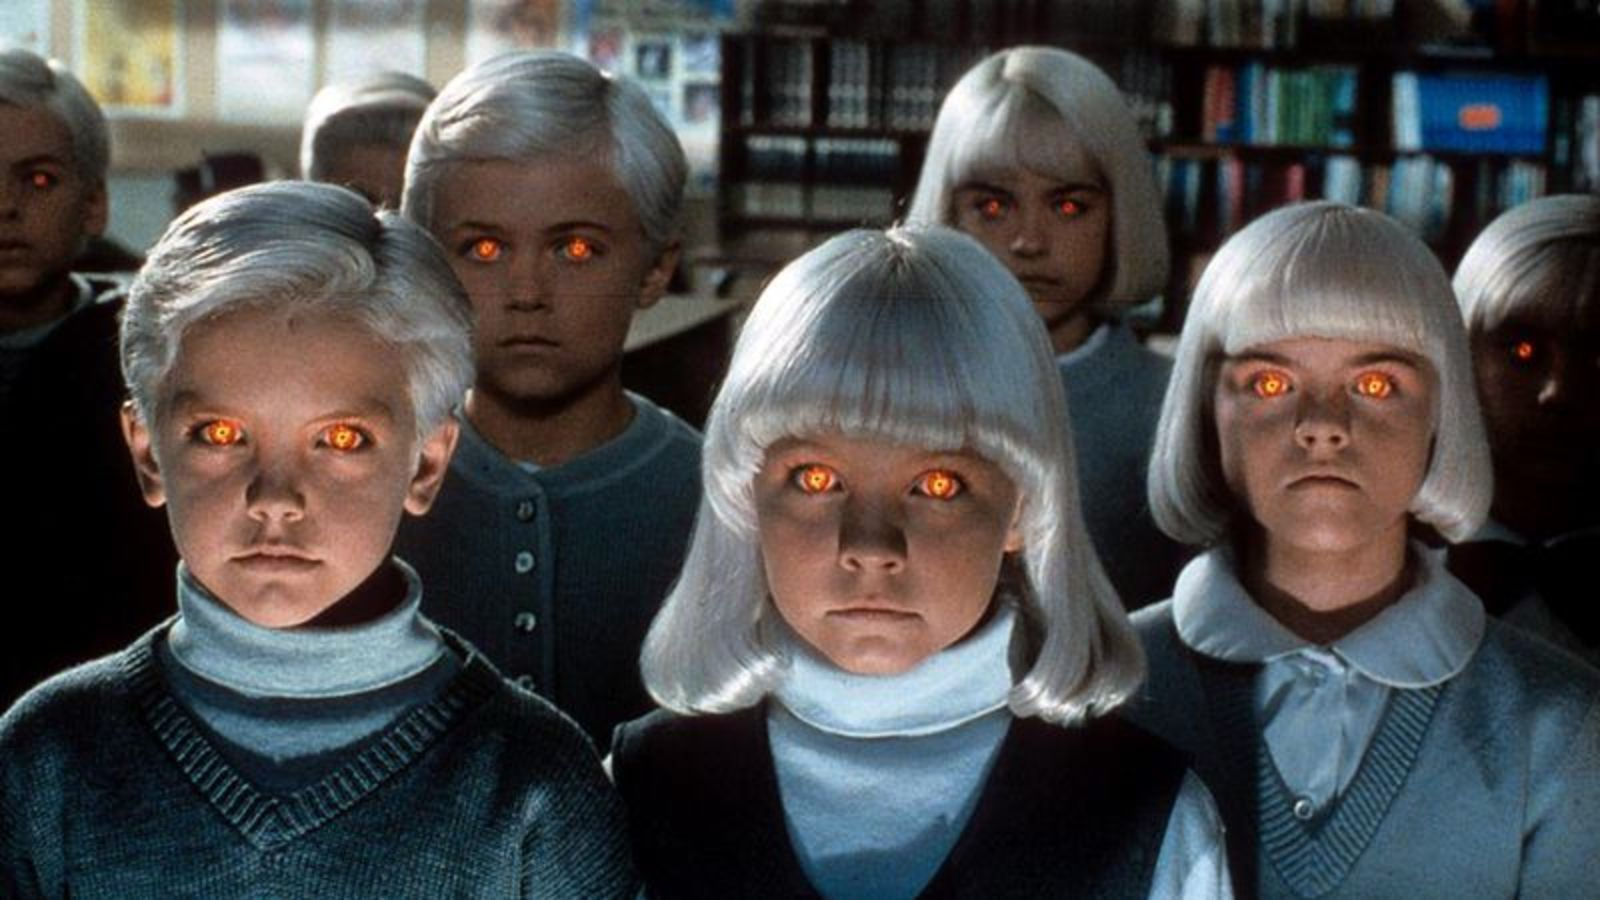 The children including Lindsay Haun and a young Thomas Dekker in Village of the Damned (1995)